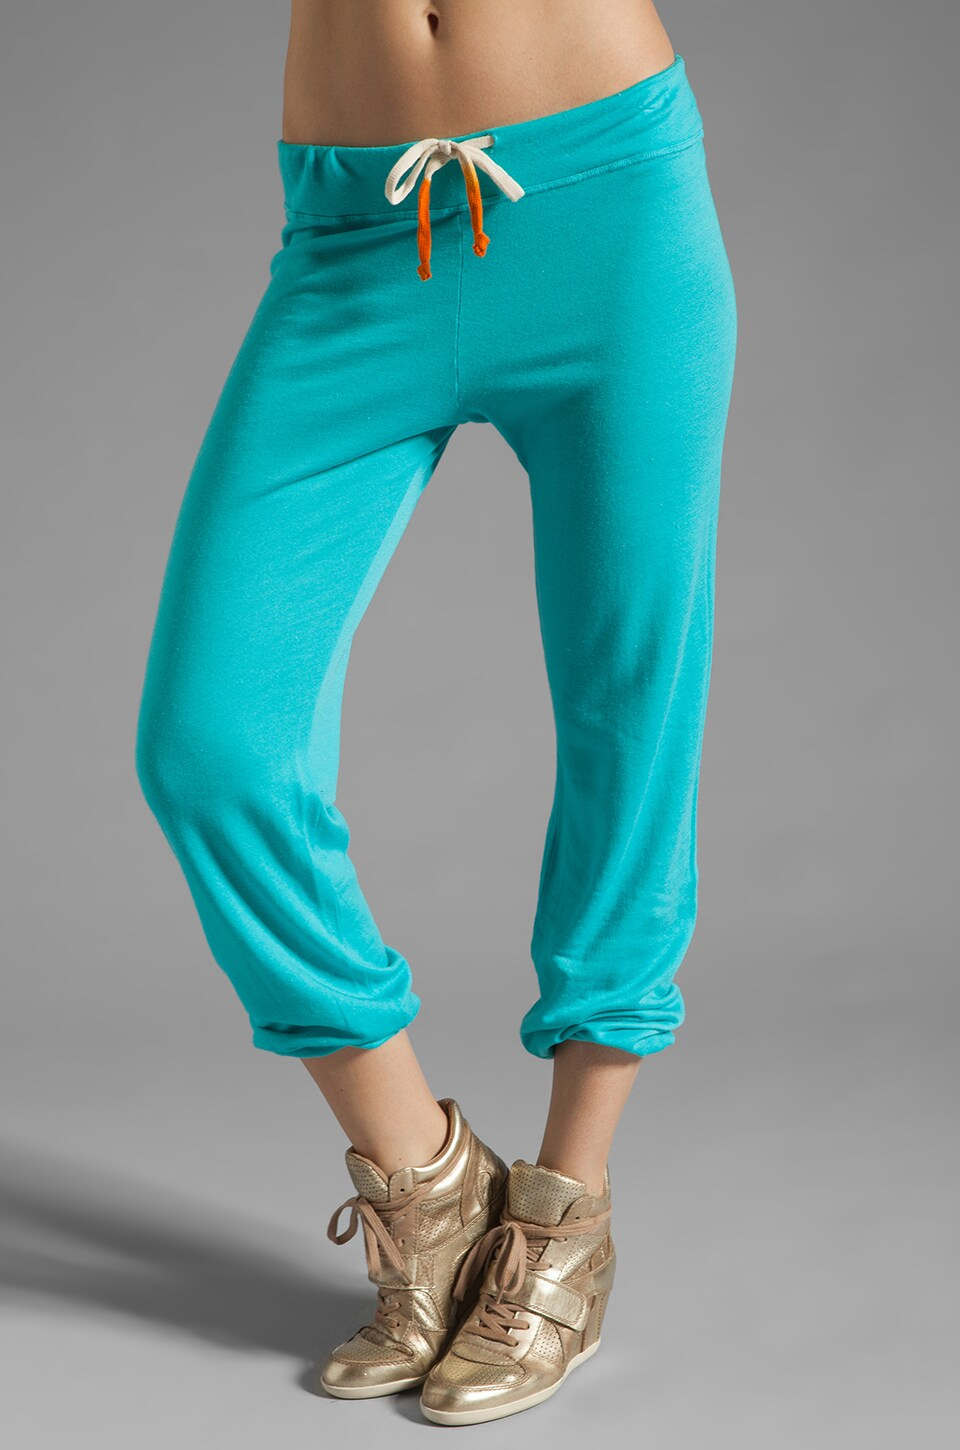 SUNDRY Light Terry Classic Sweatpant in Turquoise